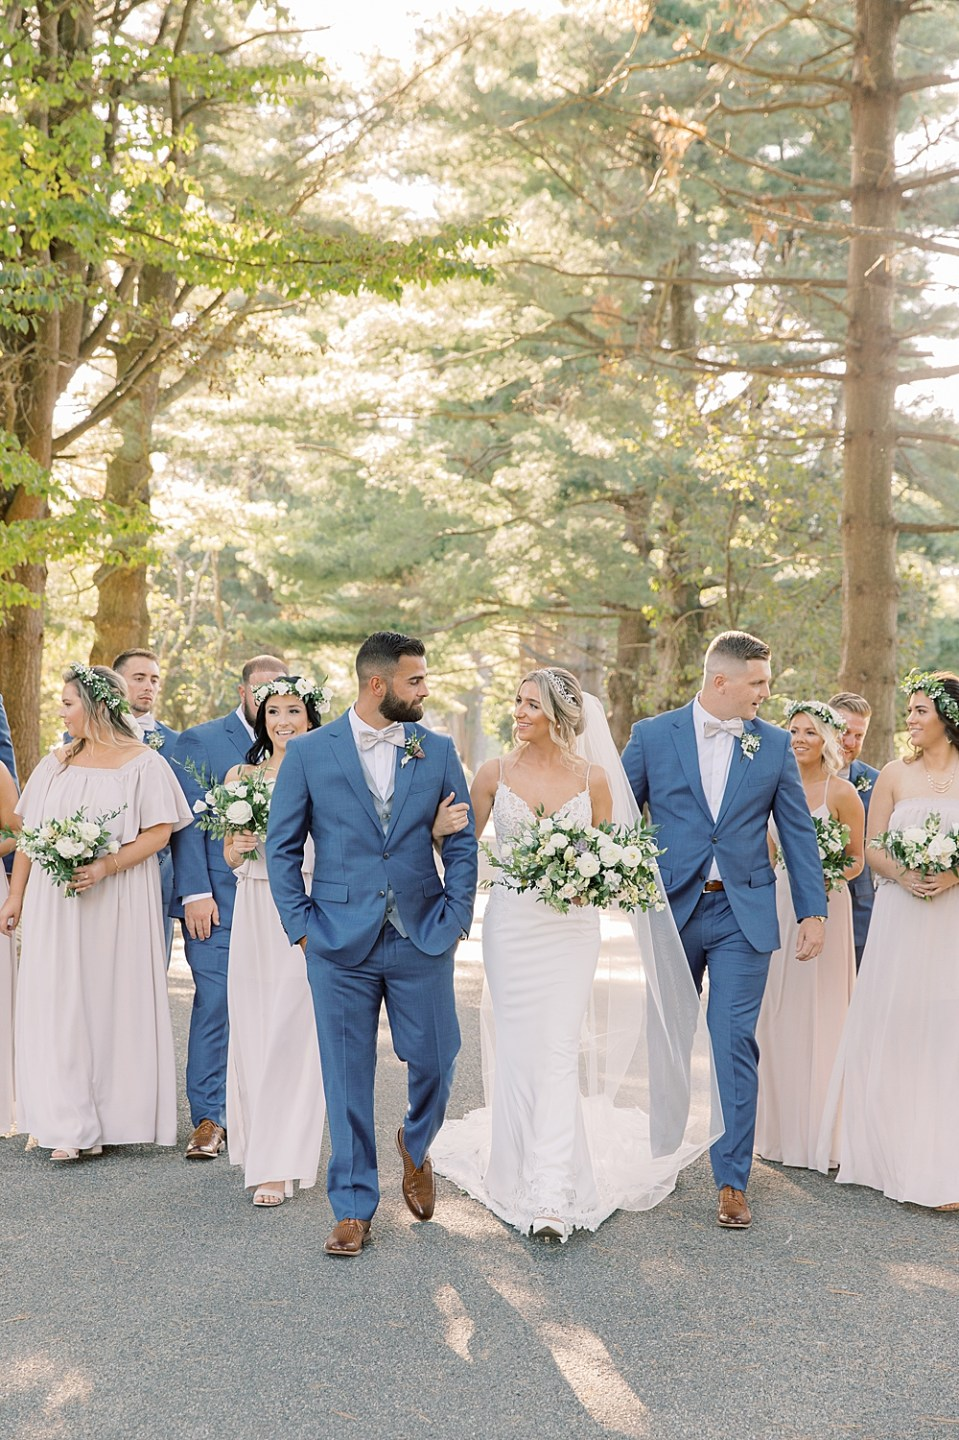 tan and blue wedding colors | ashford estate wedding | new jersey wedding photographer Sarah Canning